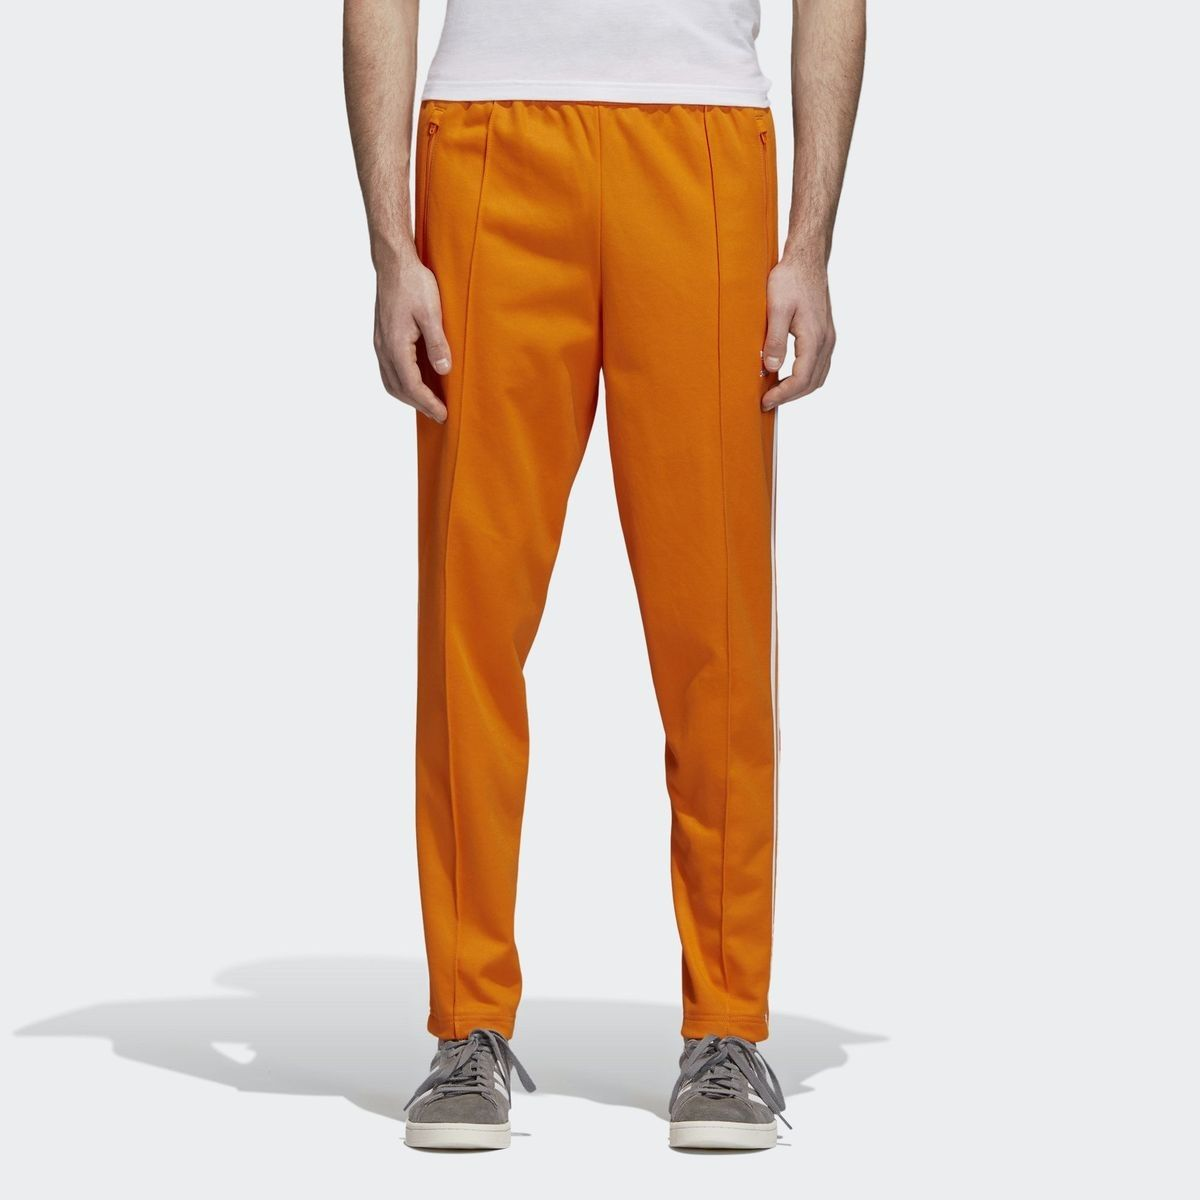 pantalon adidas orange homme